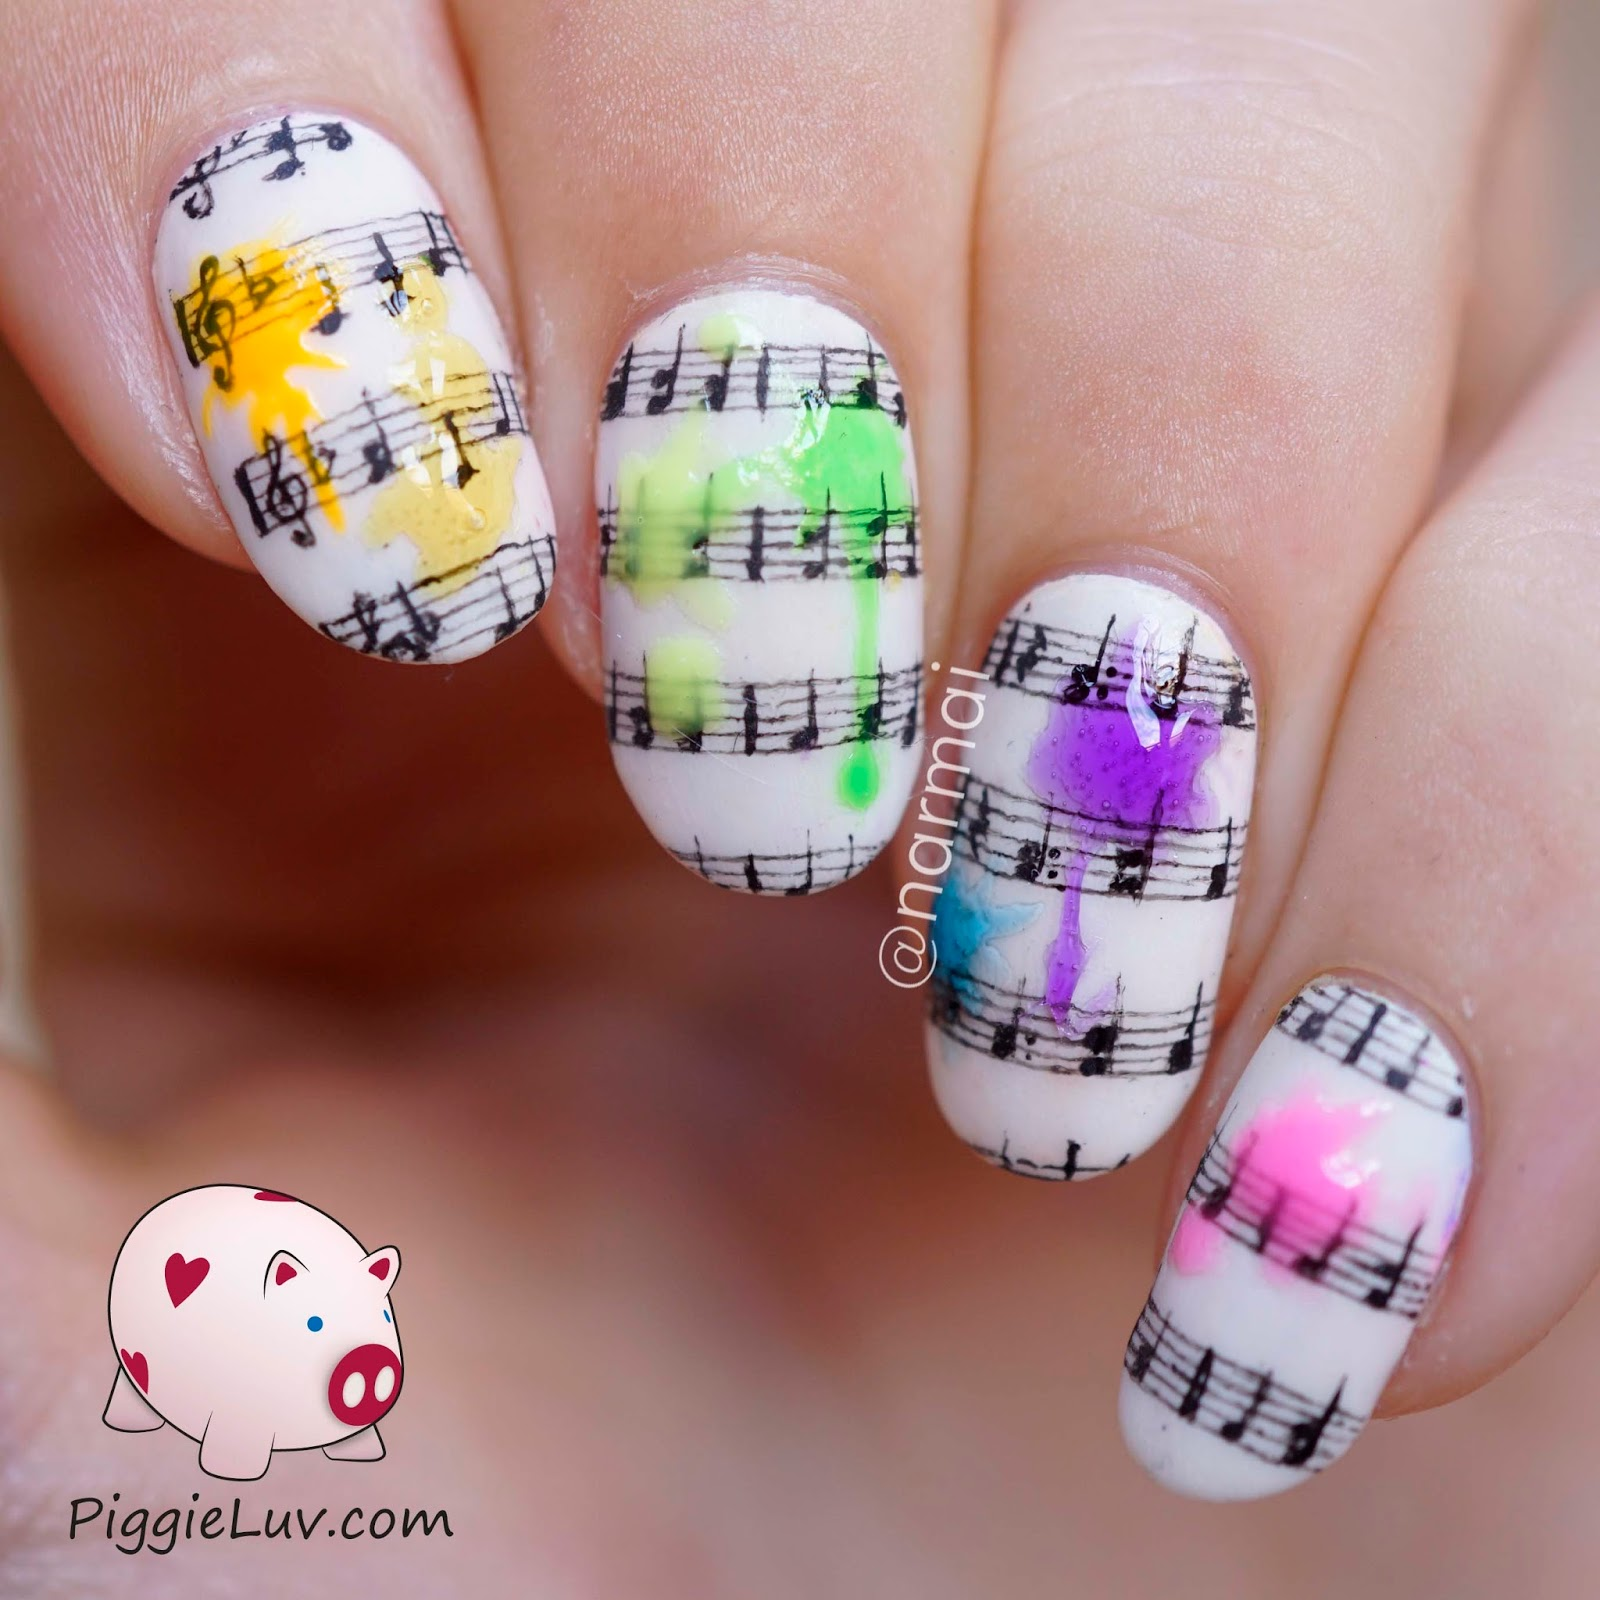 Piggieluv 1 nail art design 4 ways video tutorial i removed the liquid palisade to reveal a fail p i think the one in the video turned out a bit better but the whole idea just didnt work out the way prinsesfo Choice Image